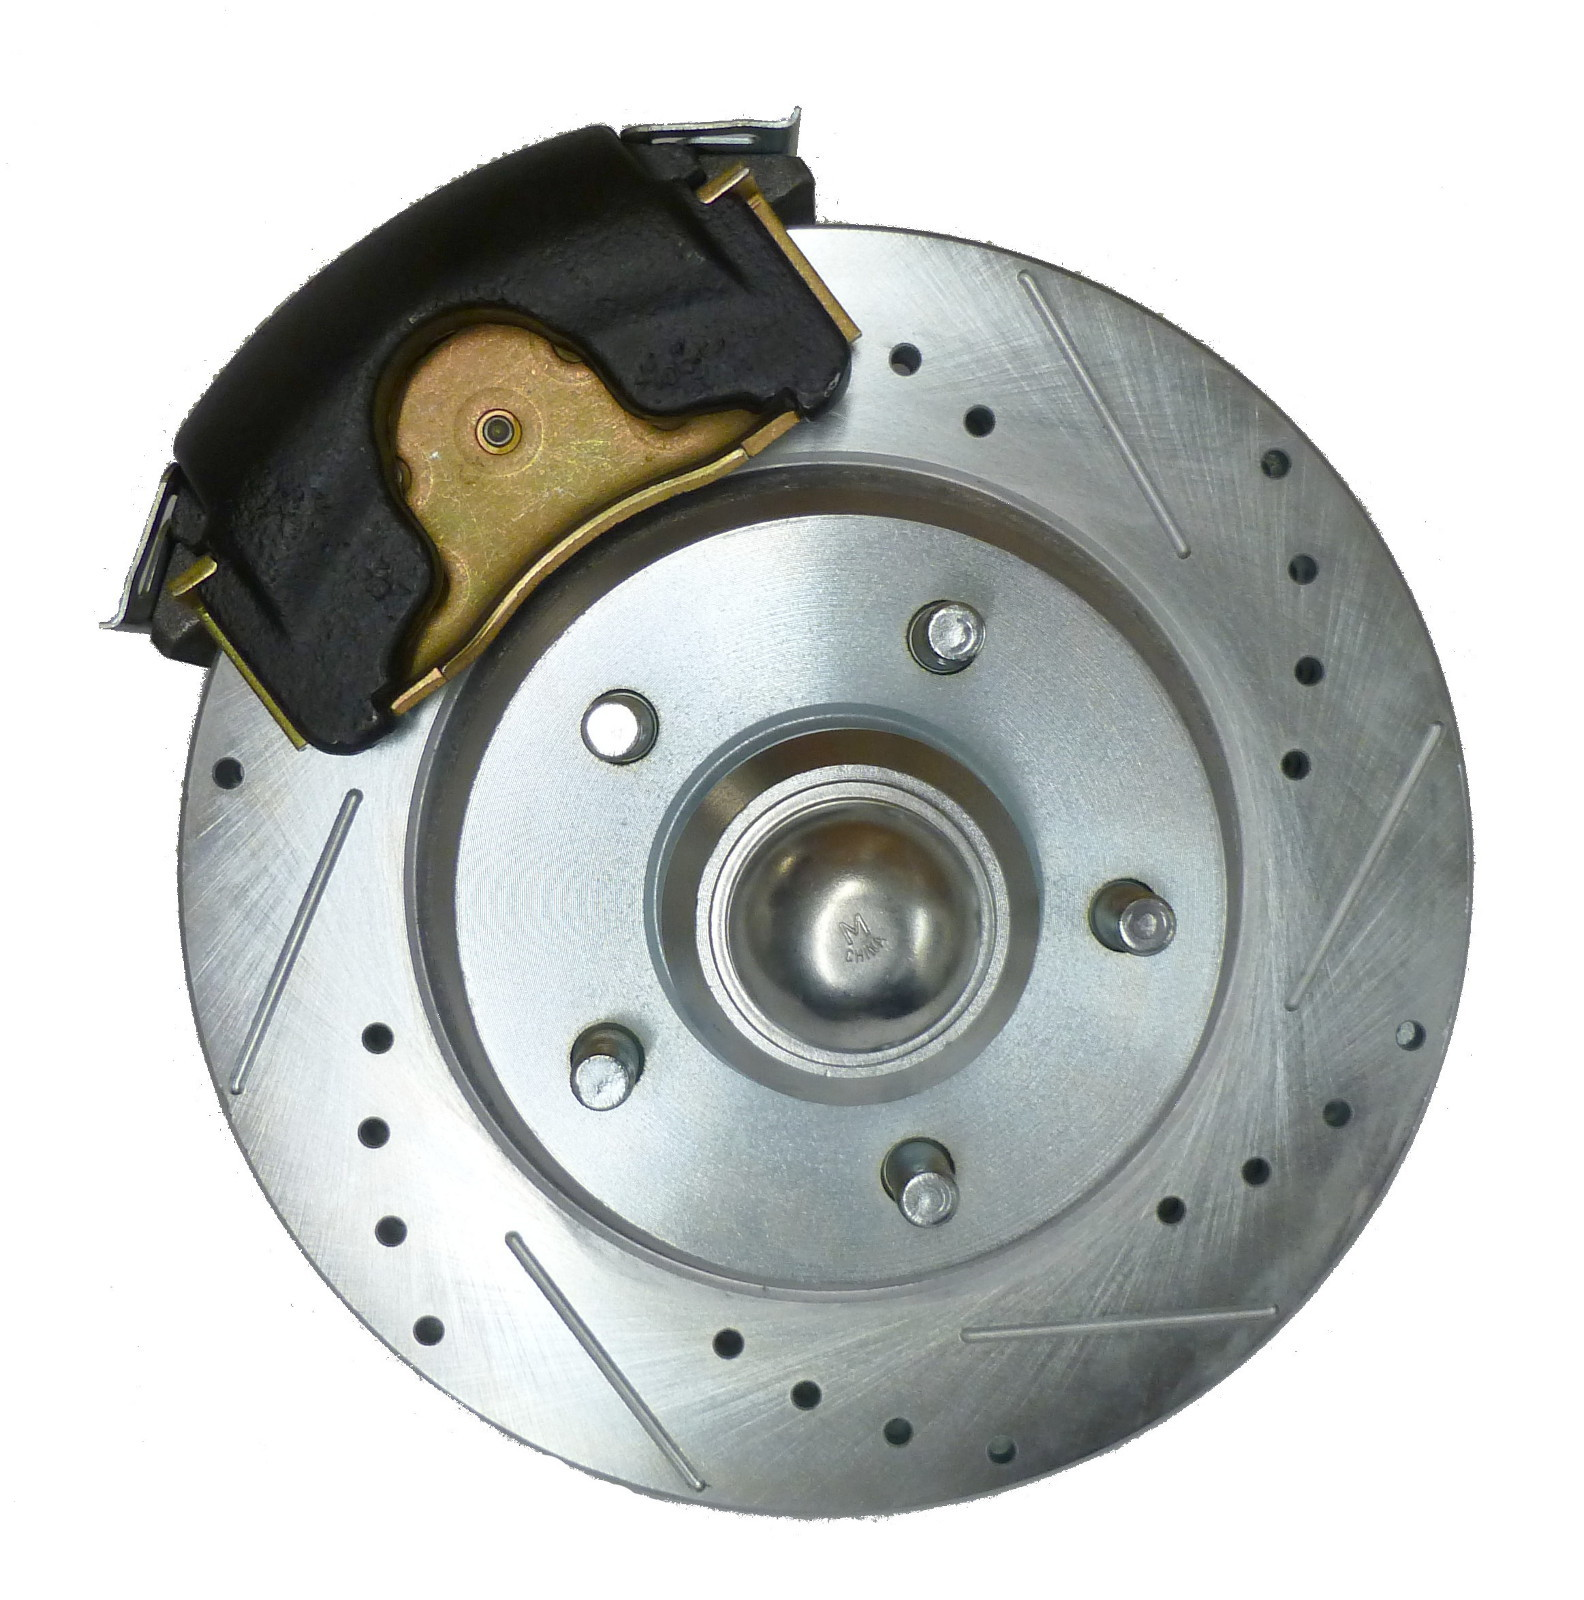 Mopar 11.75$ Front Disc Brake Kit (Stage 2)